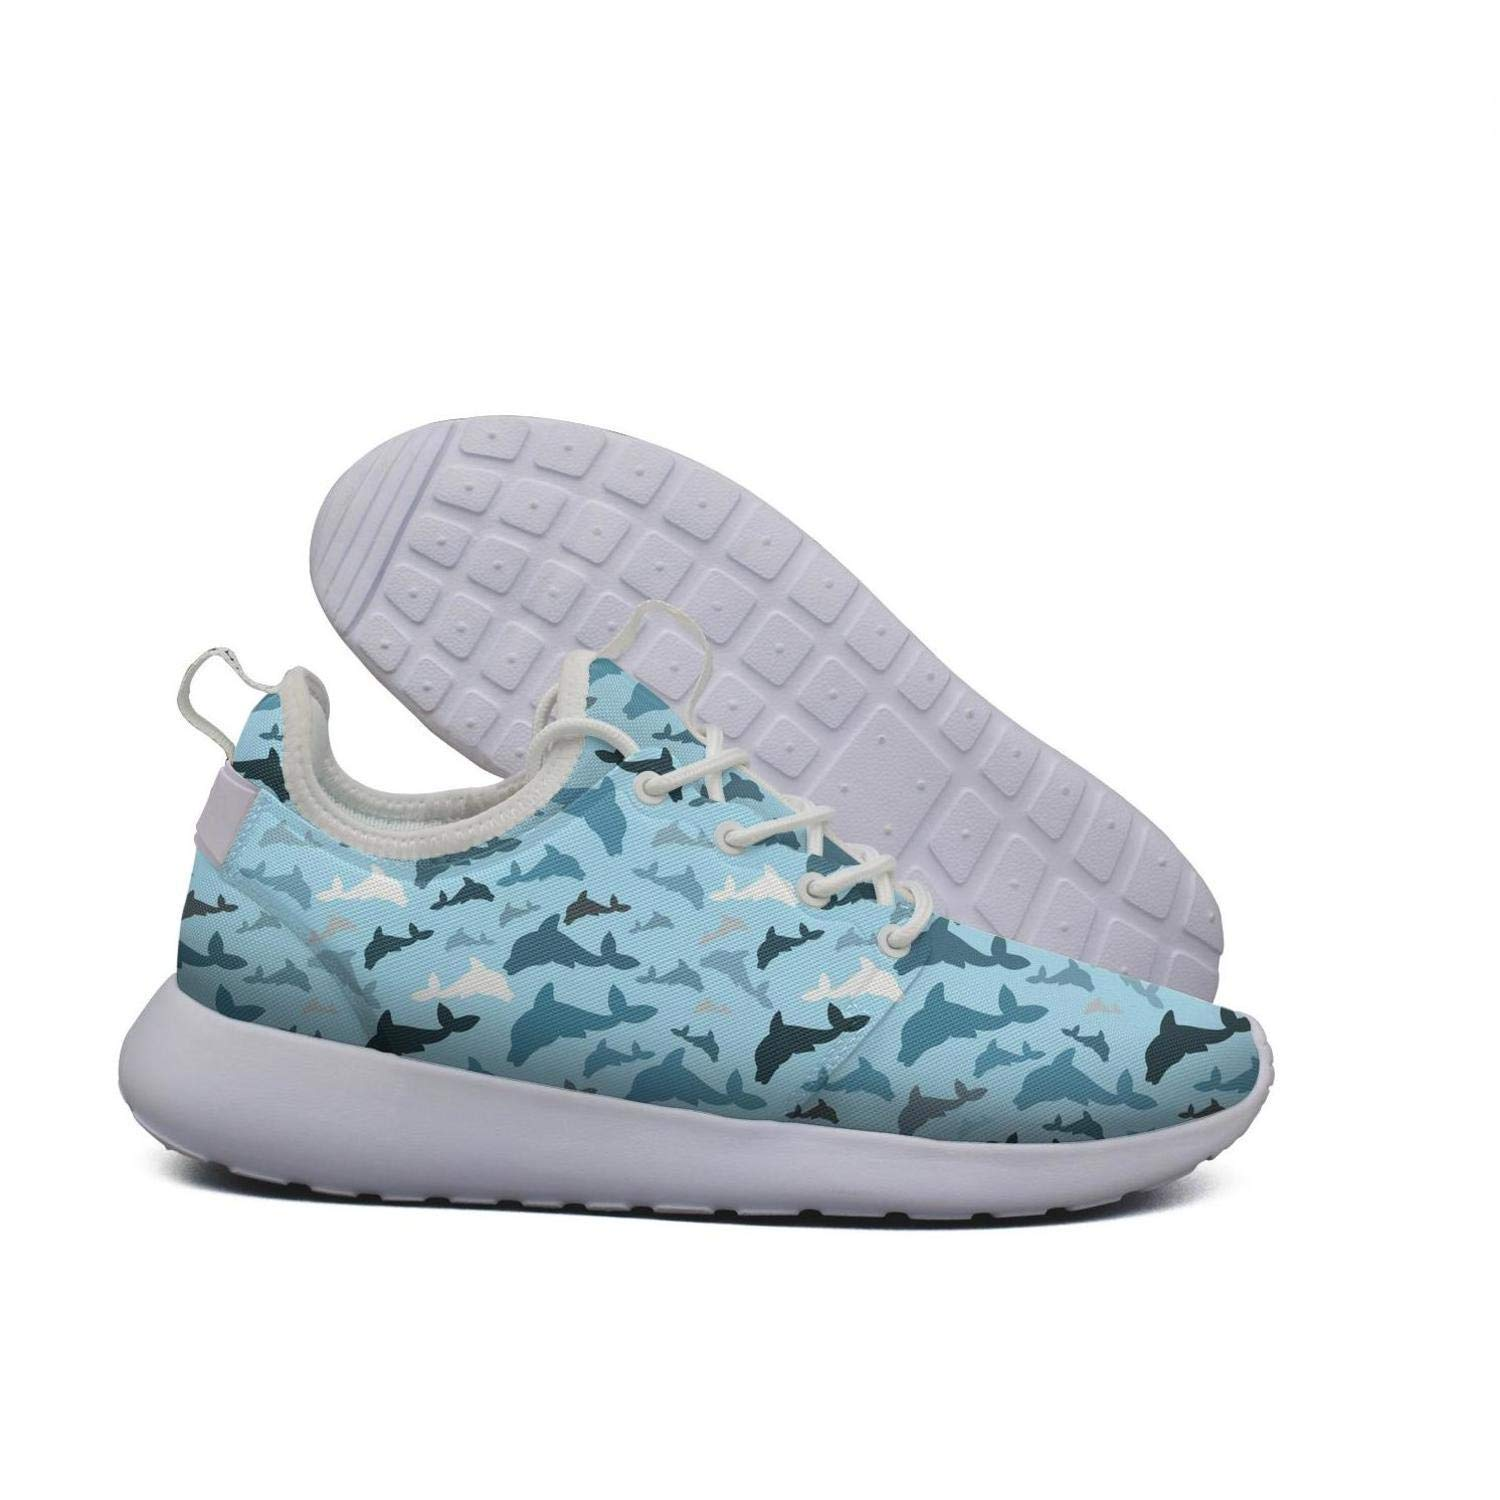 Hoohle Sports Womens Dolphin Beach Print Flex Mesh Roshe 2 Lightweight Breathable Cross-Trainer Shoes